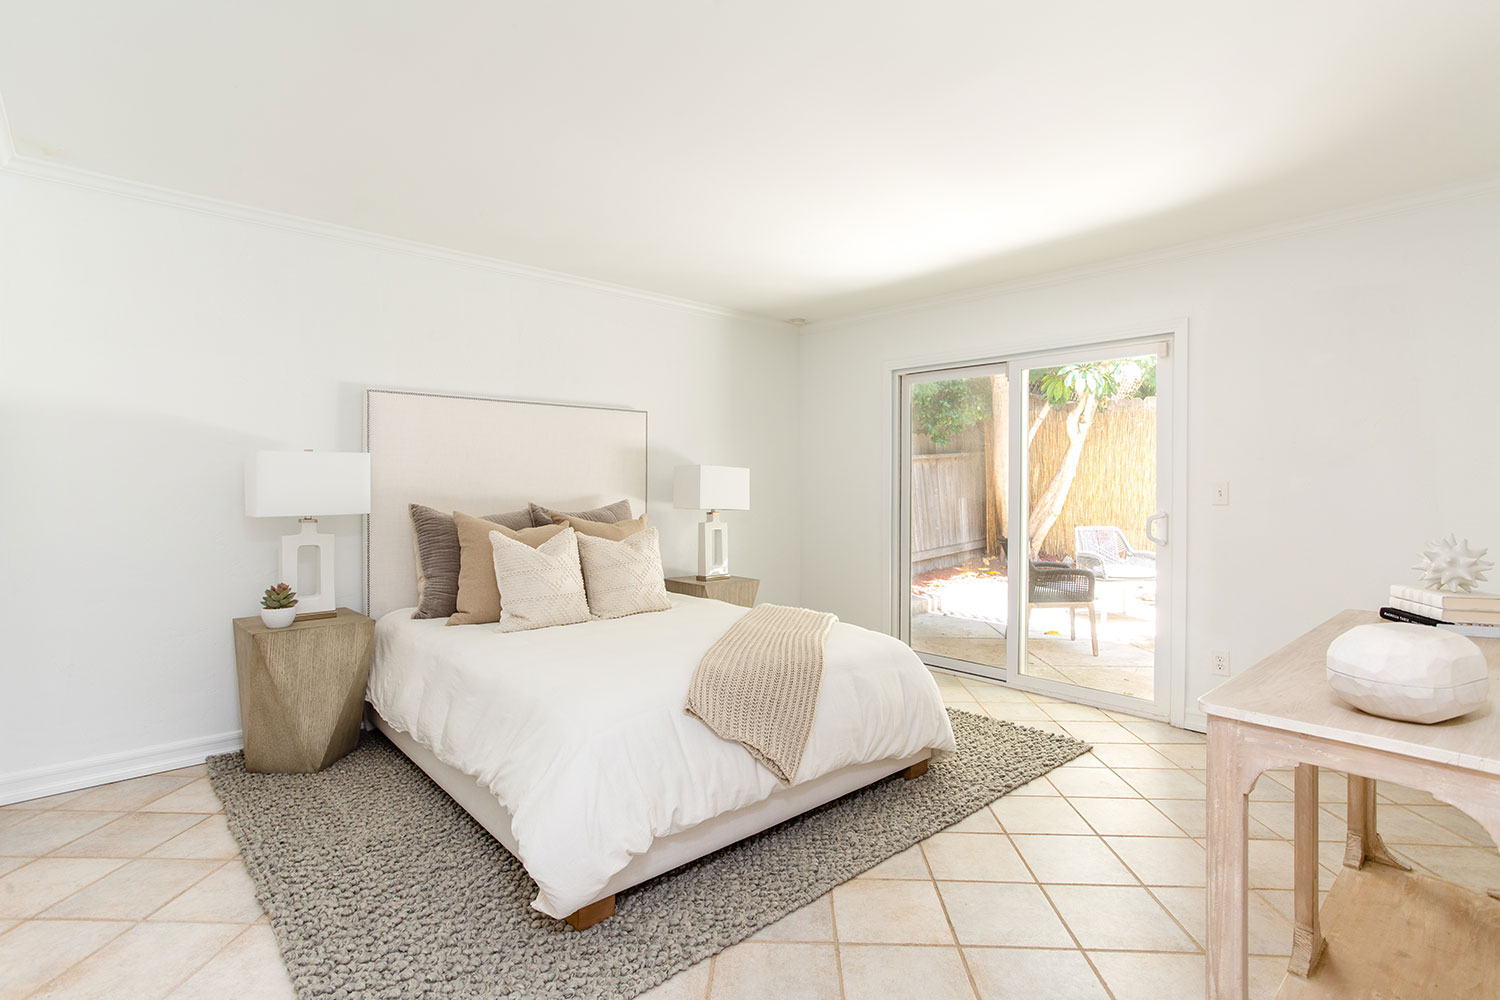 Bedroom with white and grey in Redondo beach